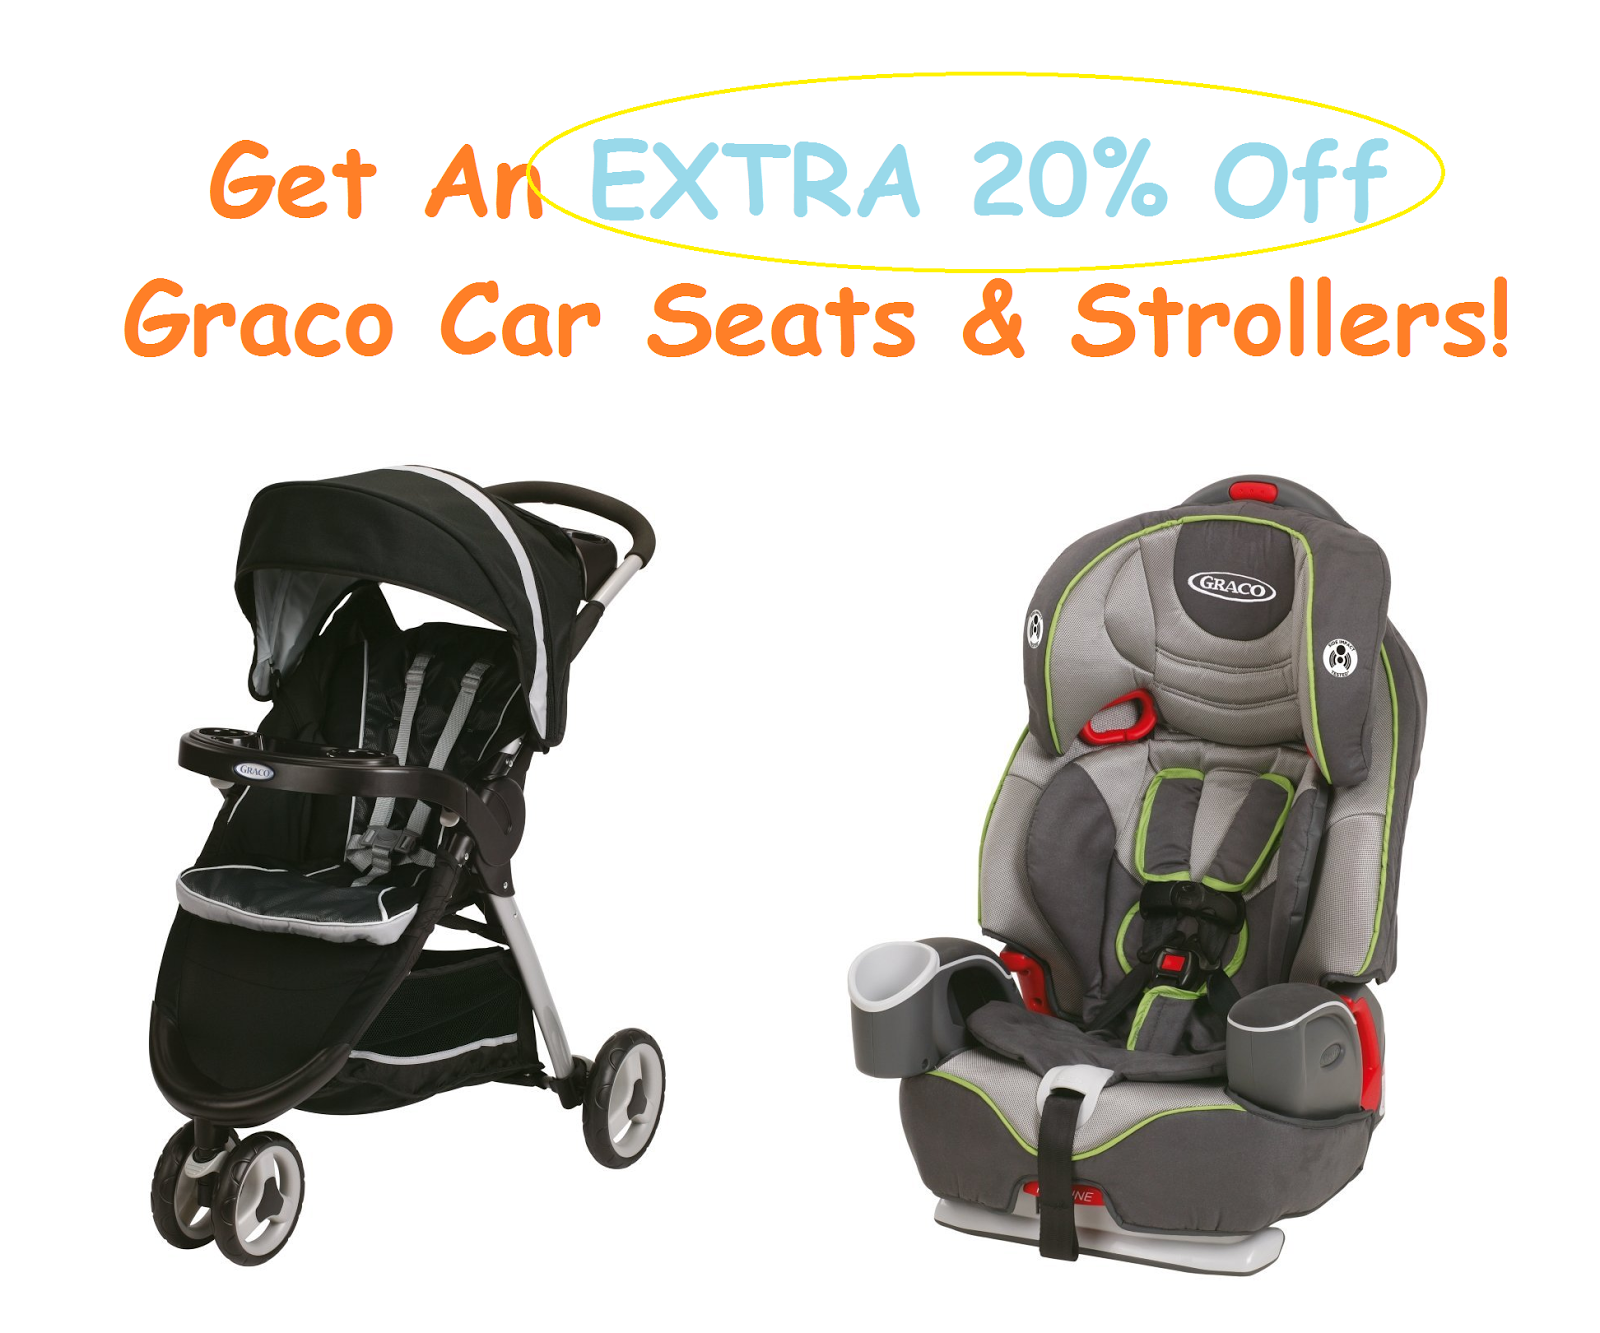 Get An Extra 20% Off Graco Car Seats & Strollers!